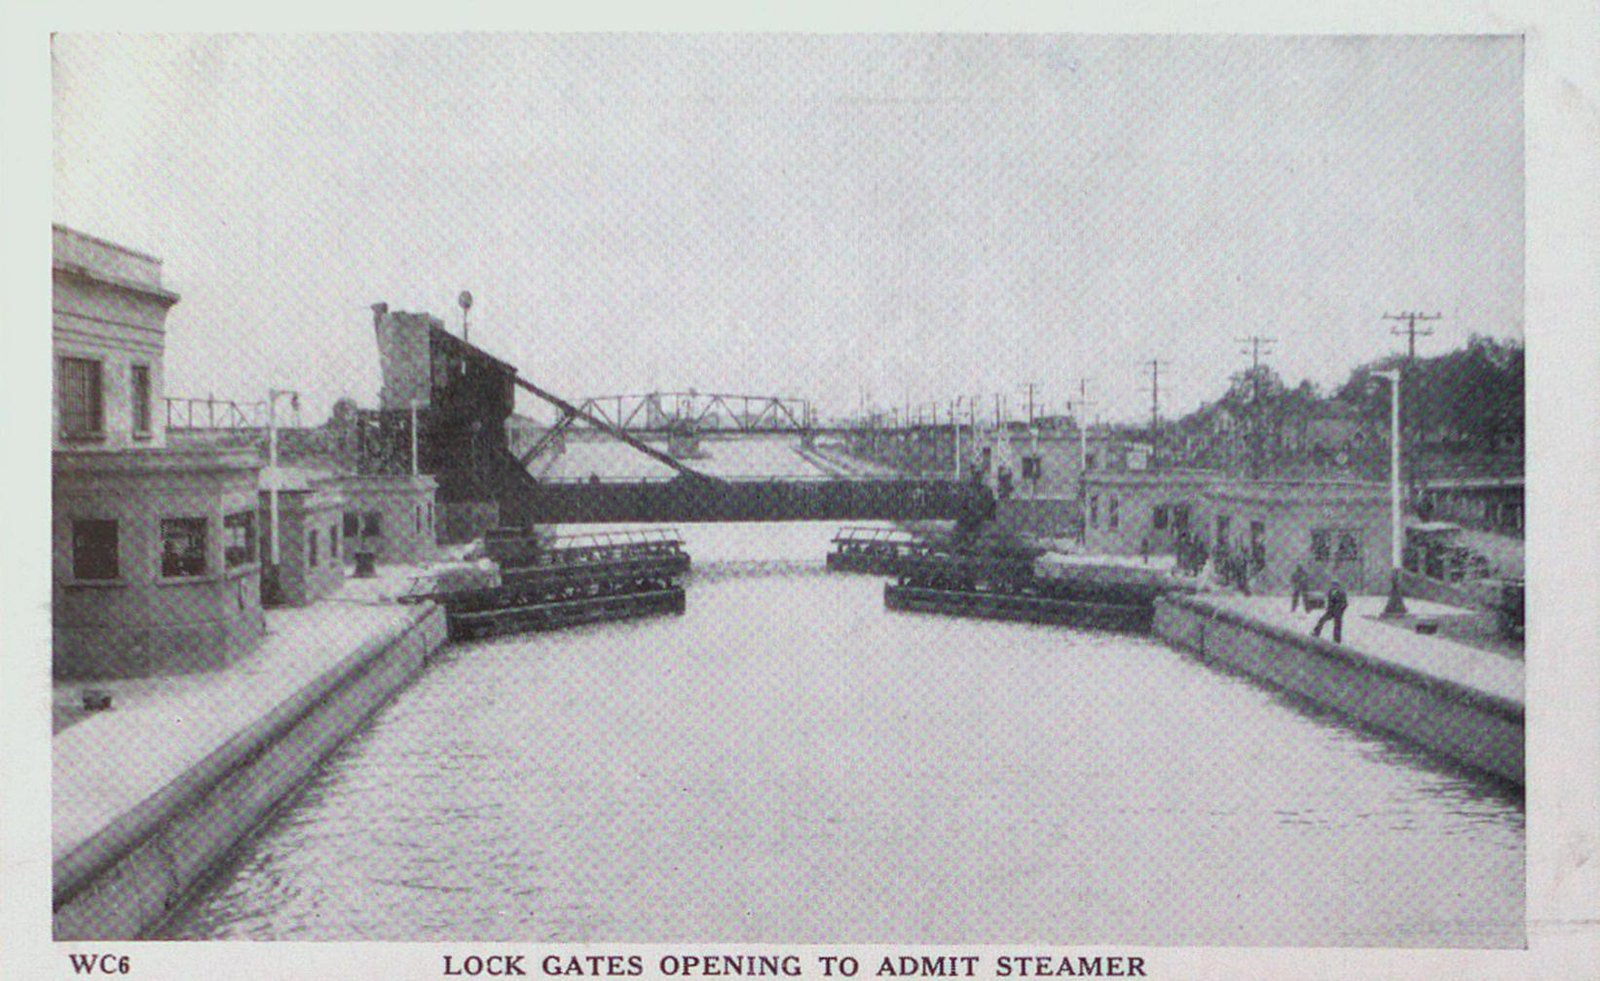 A Lock on the Welland Ship Canal